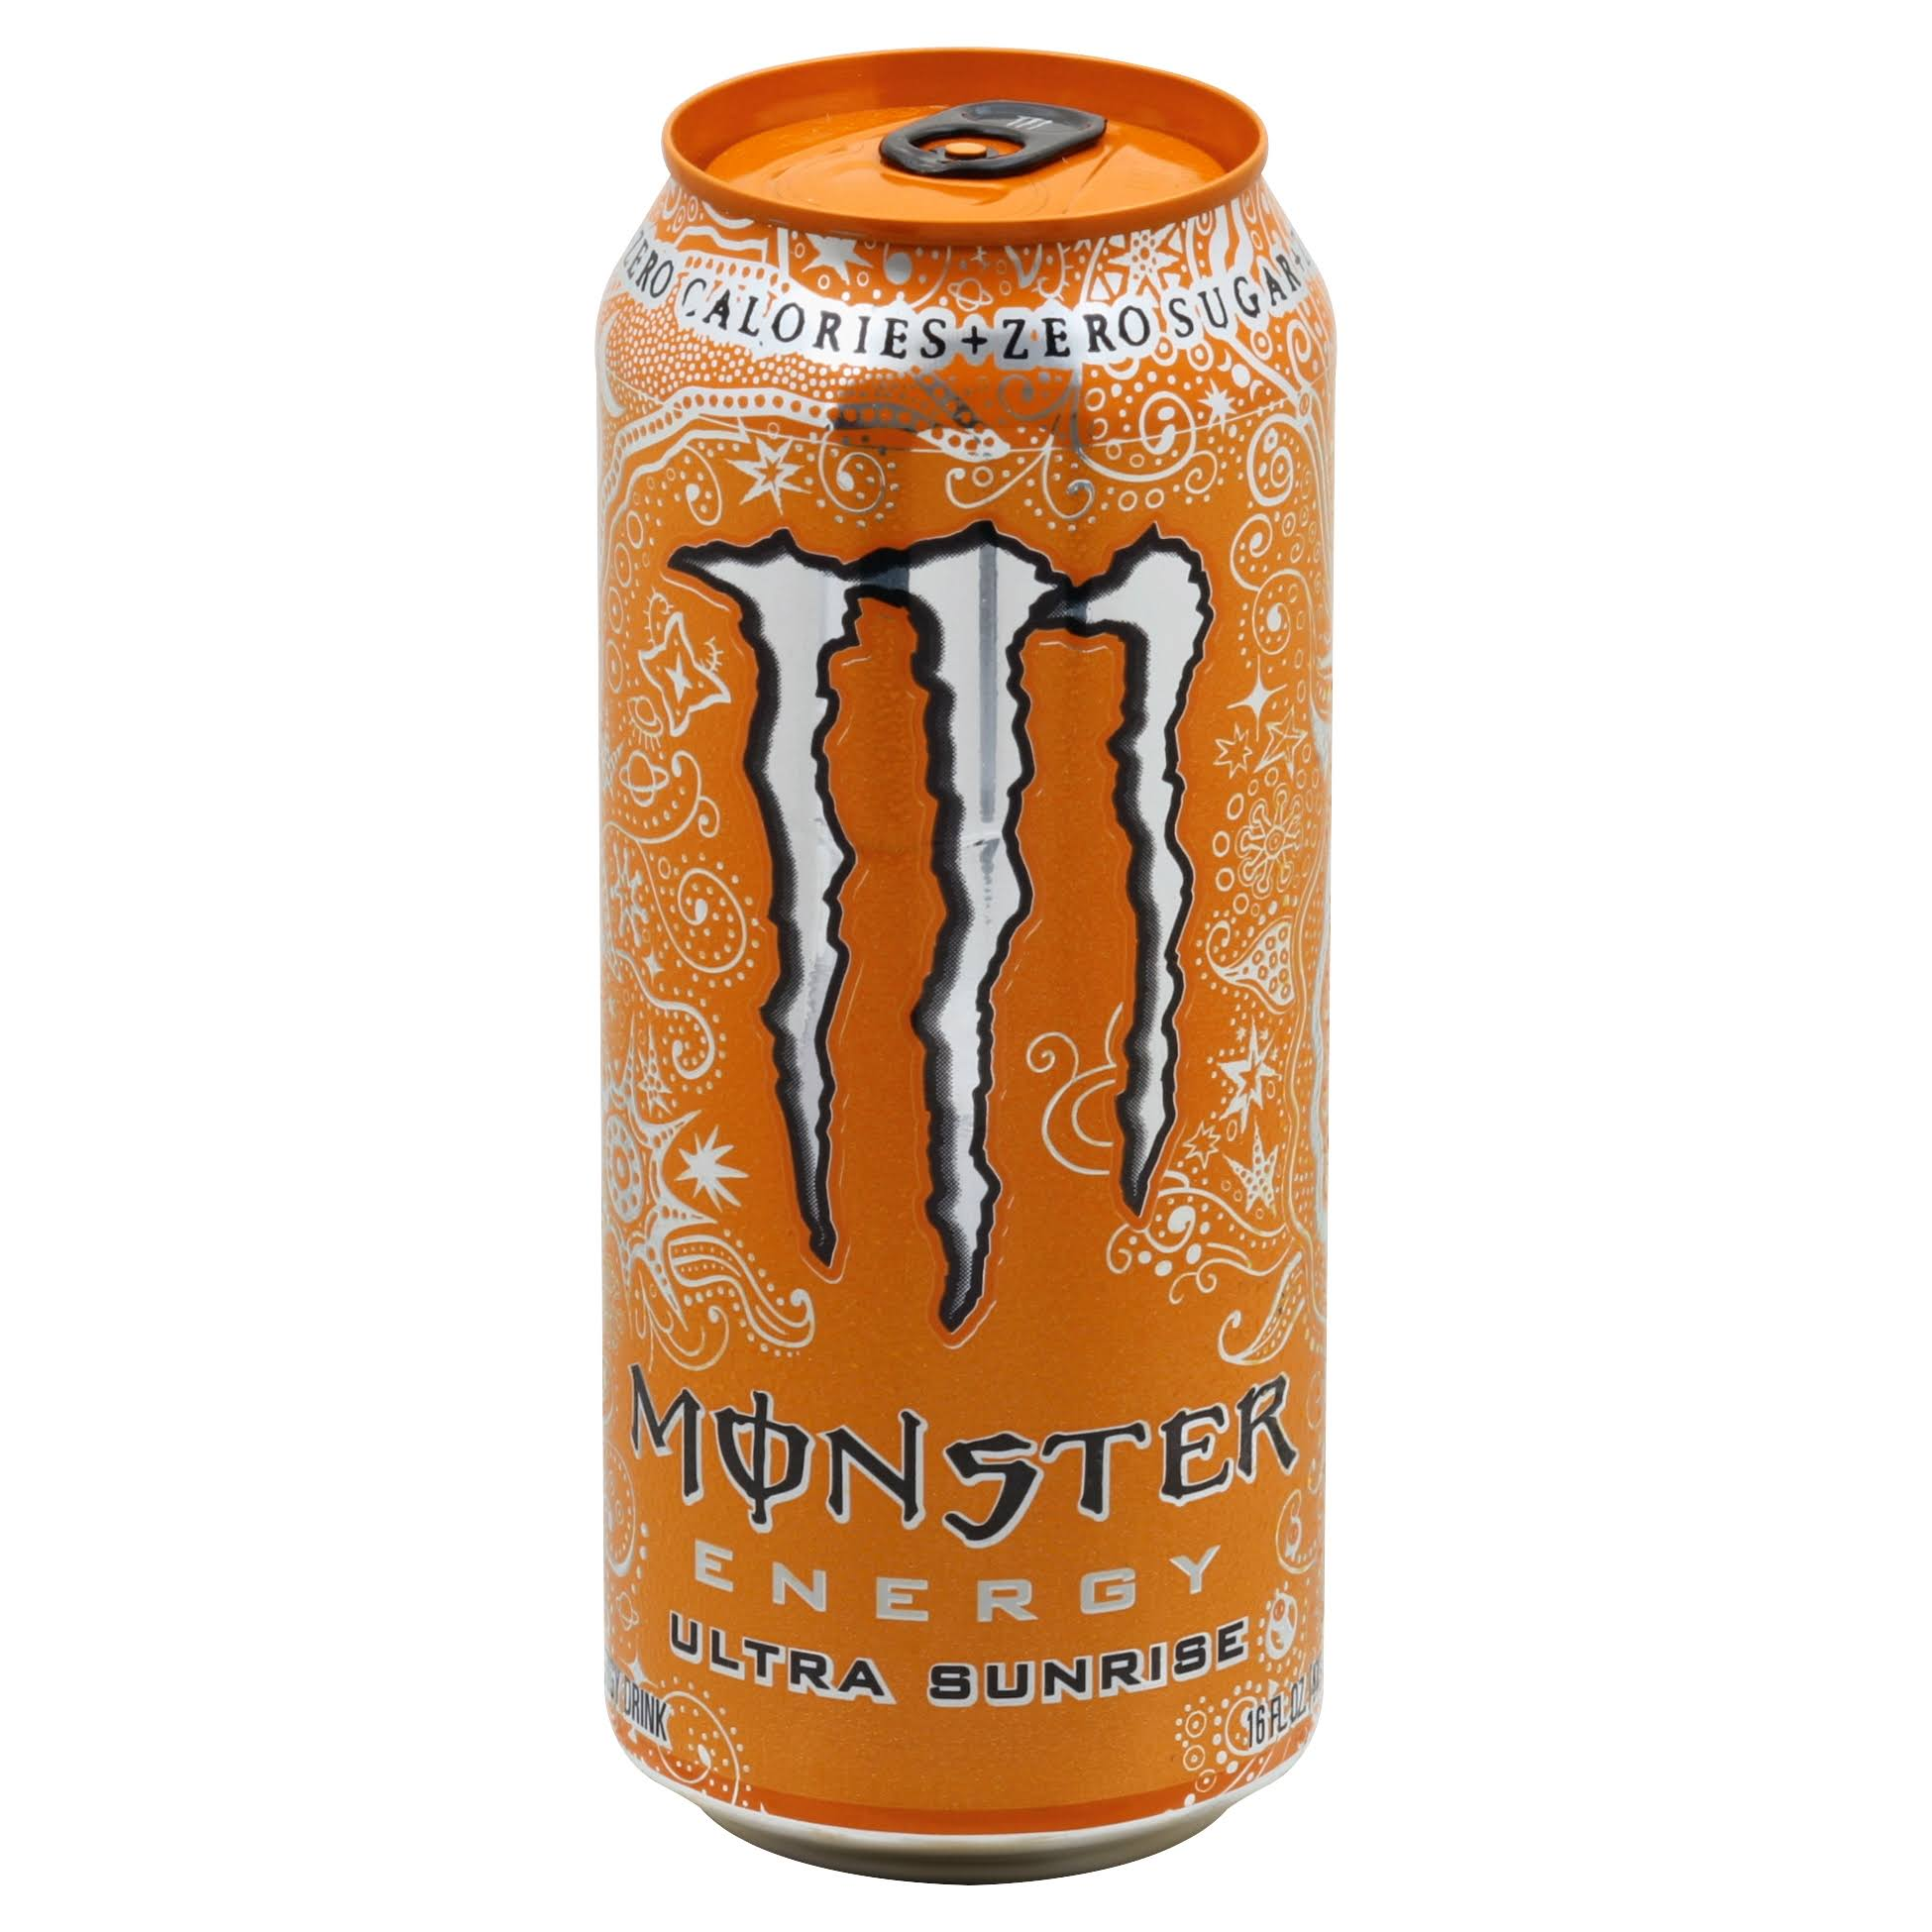 Monster Ultra Sunrise Energy Drink - 16 oz